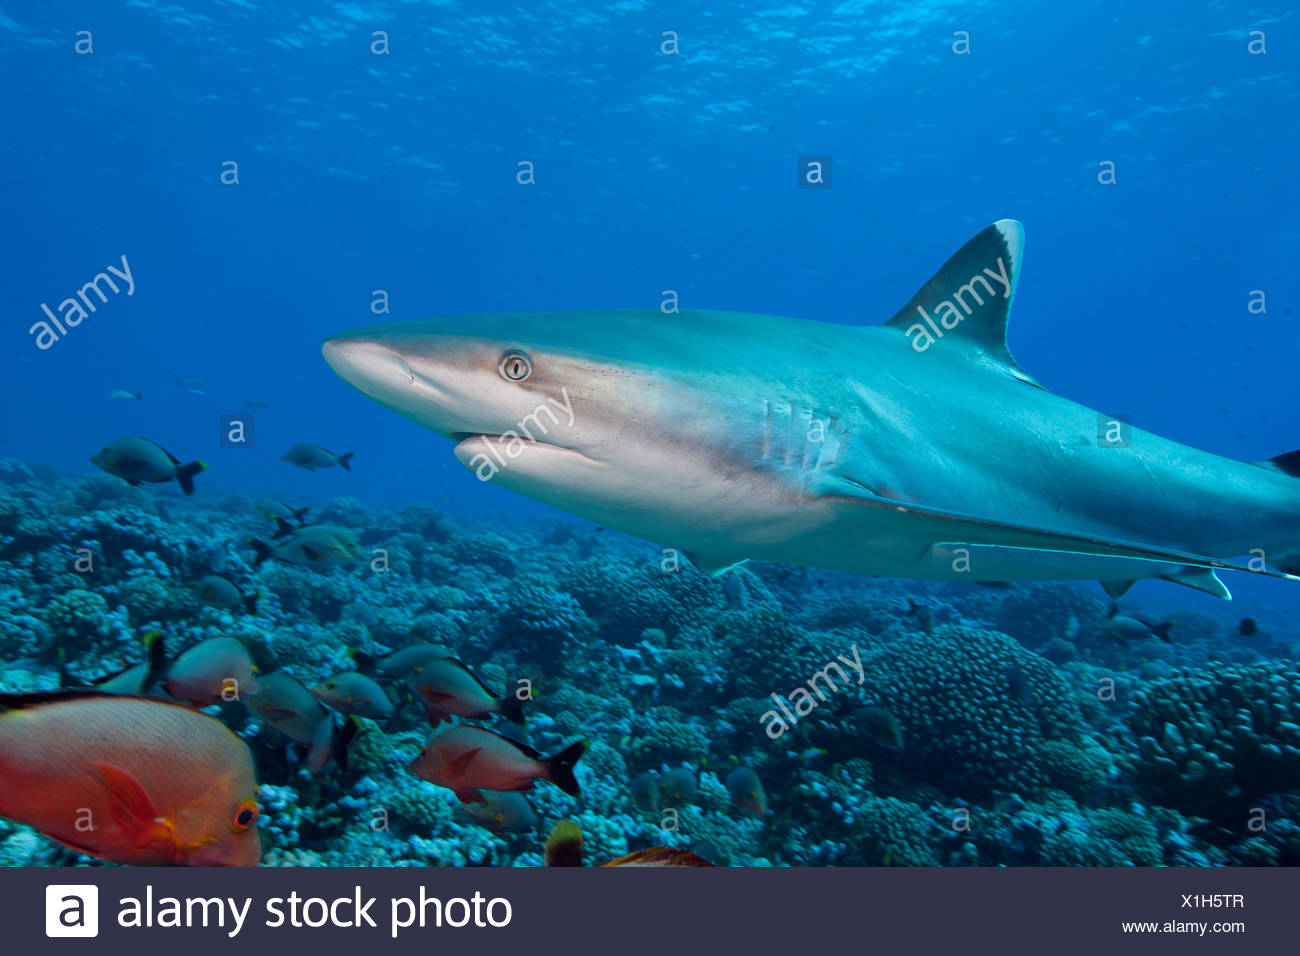 Graceful lines of a Silvertip shark (Carcharhinus albimarginatus) swimming above a coral reef in Rangiroa. - Stock Image